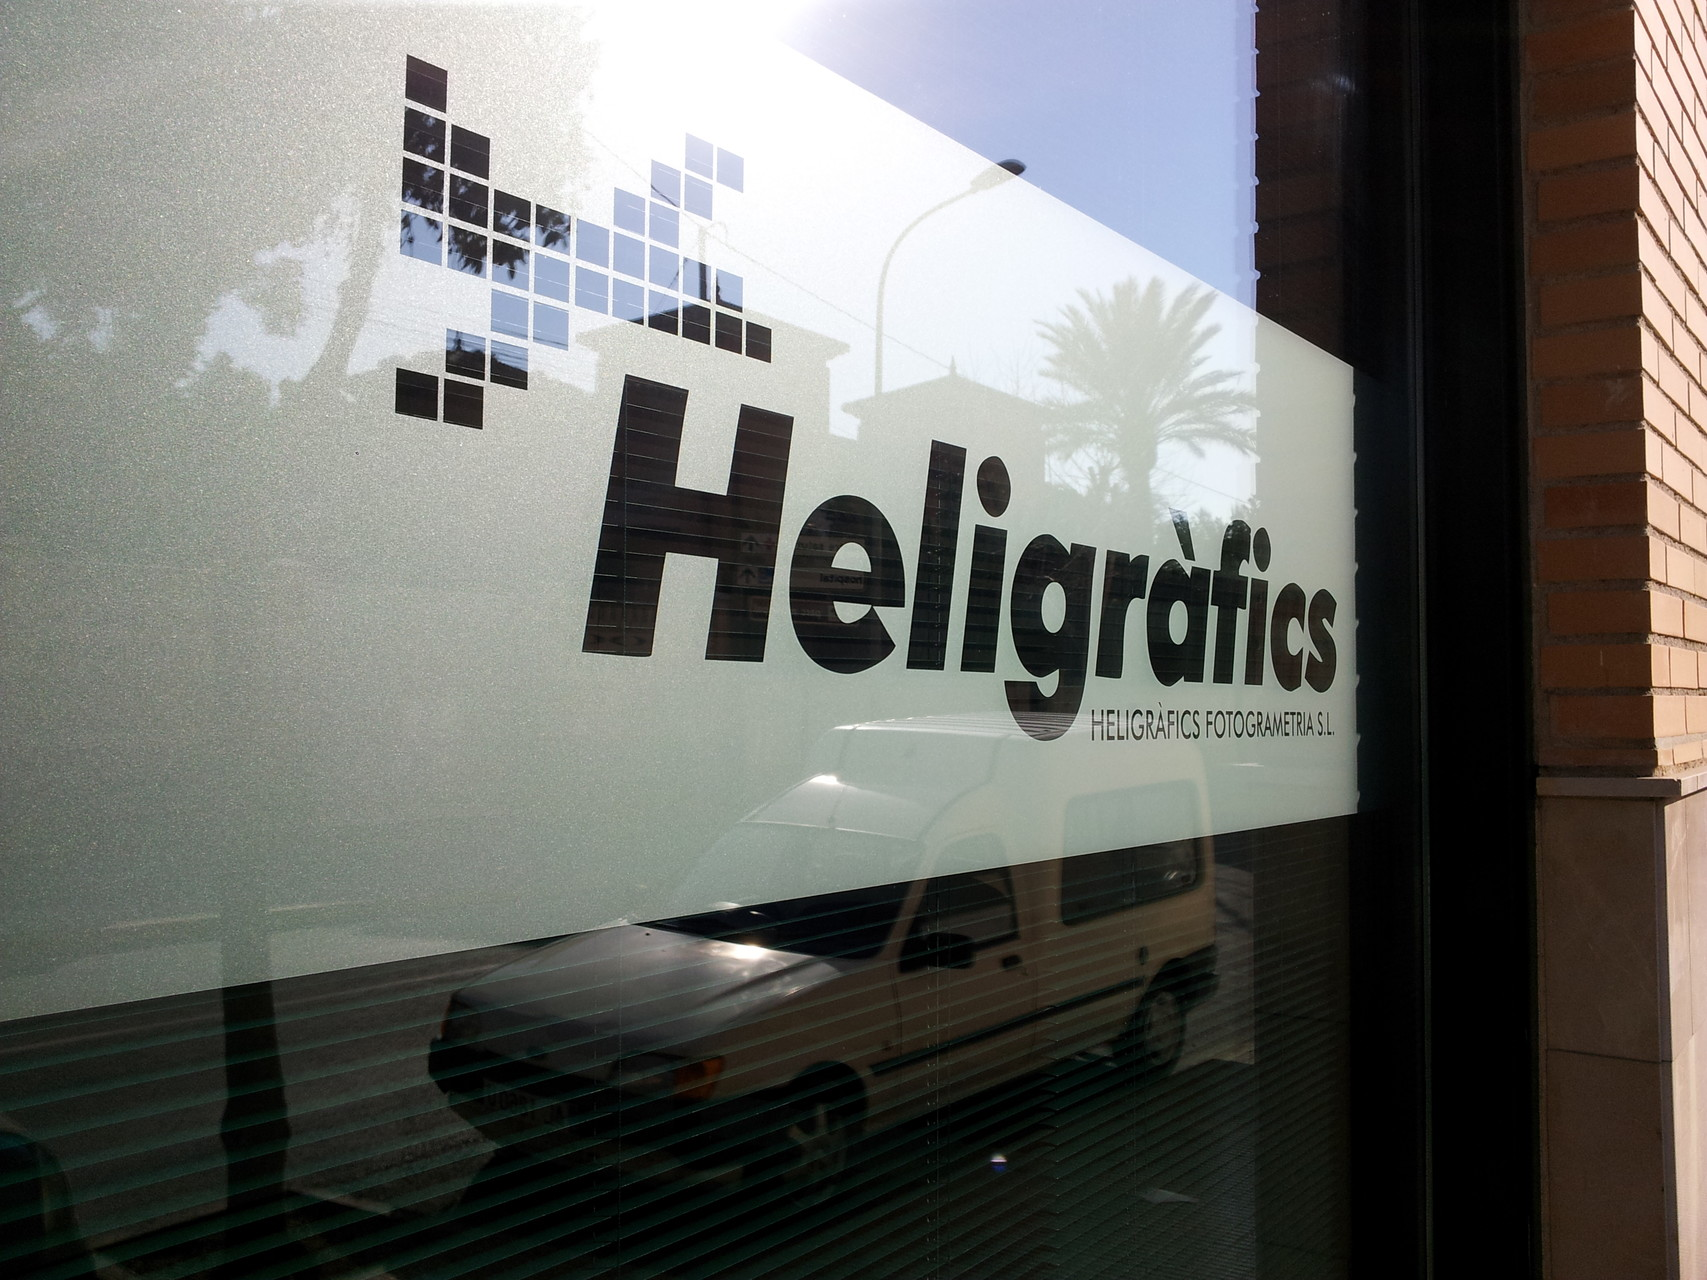 Heligràfics headquarters, photogrammetry, LIDAR and applied systems